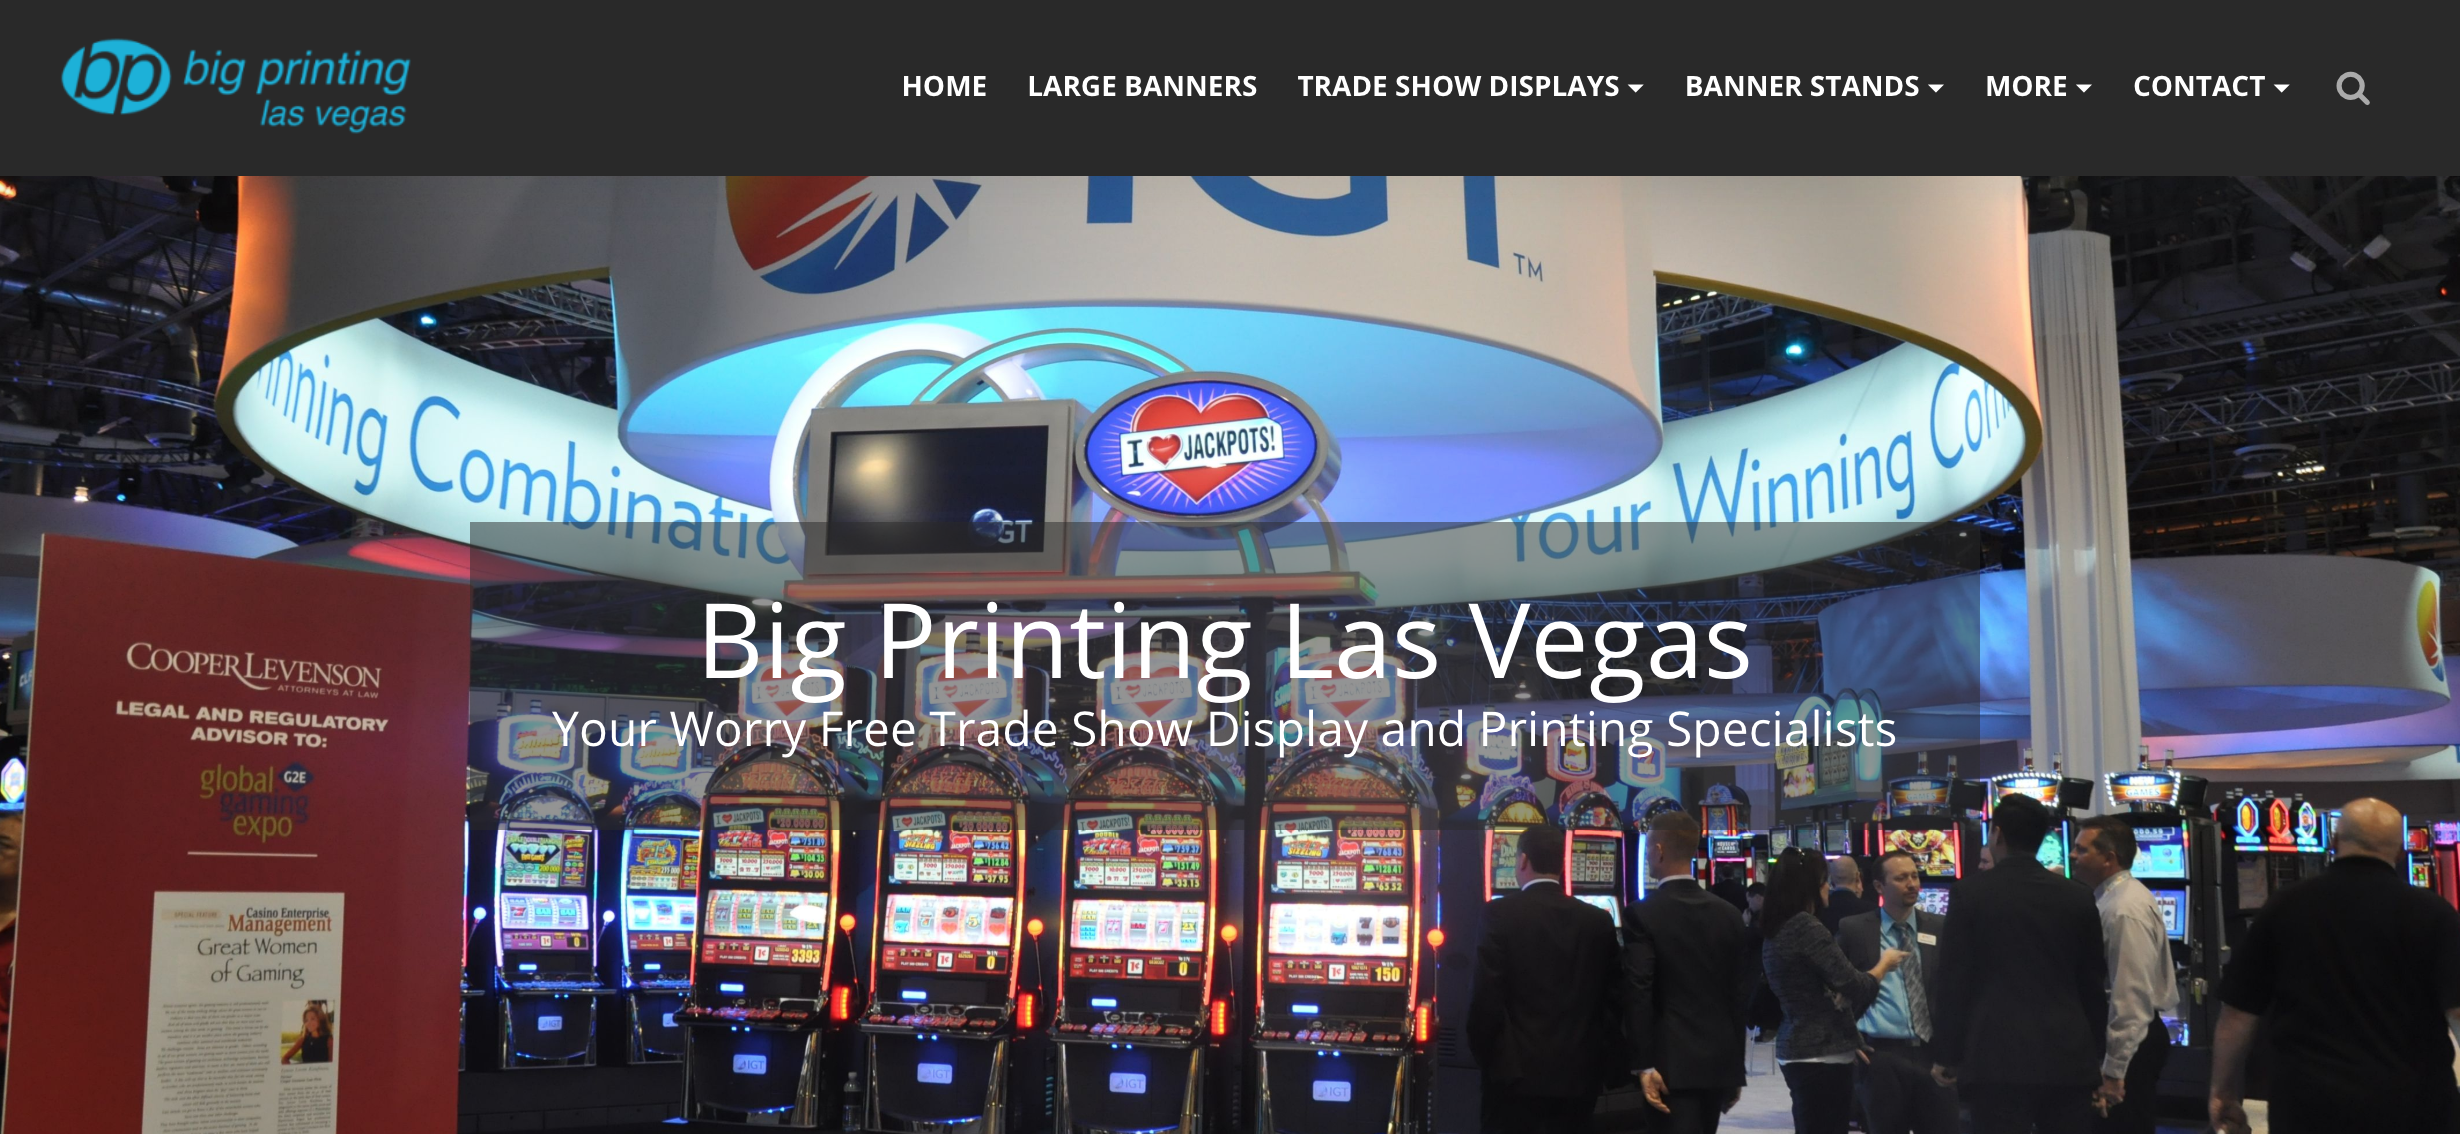 Big Printing Las Vegas Website Home Page